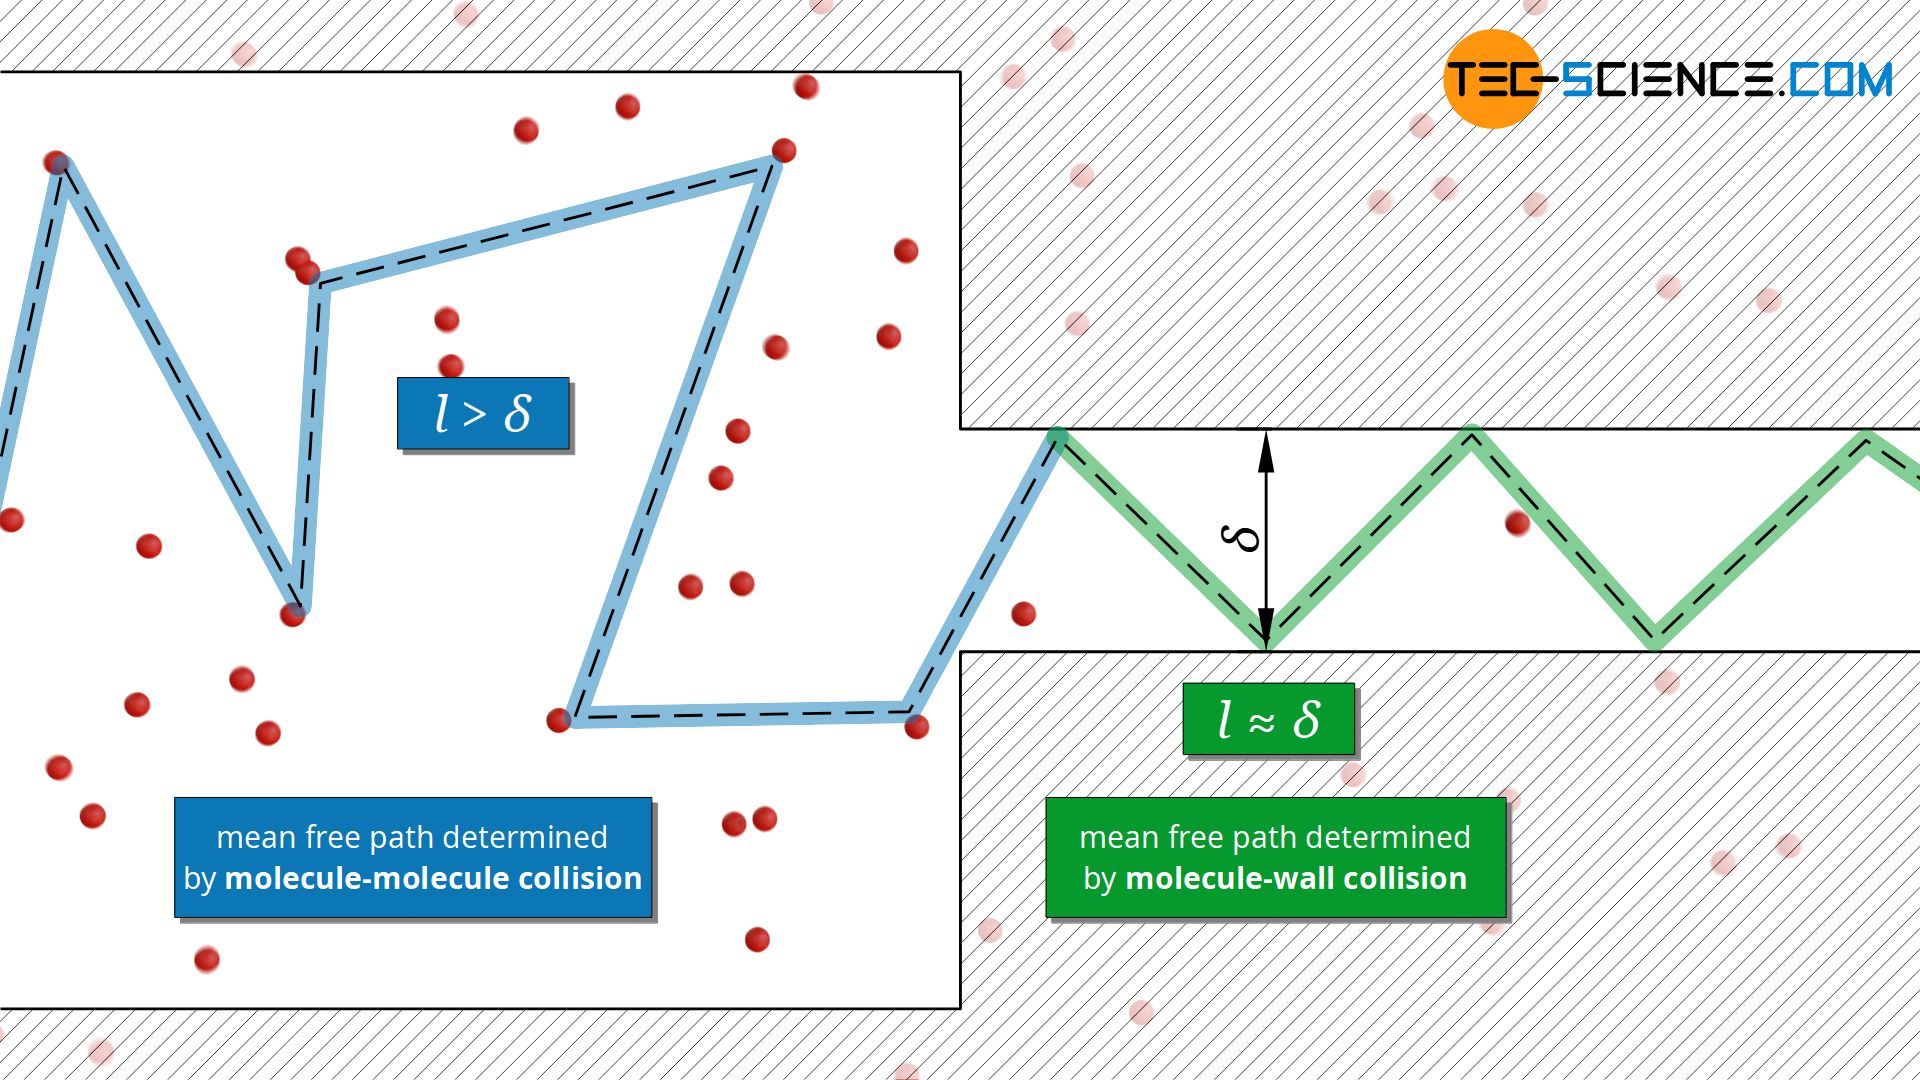 Influence of the container dimensions on the mean free path